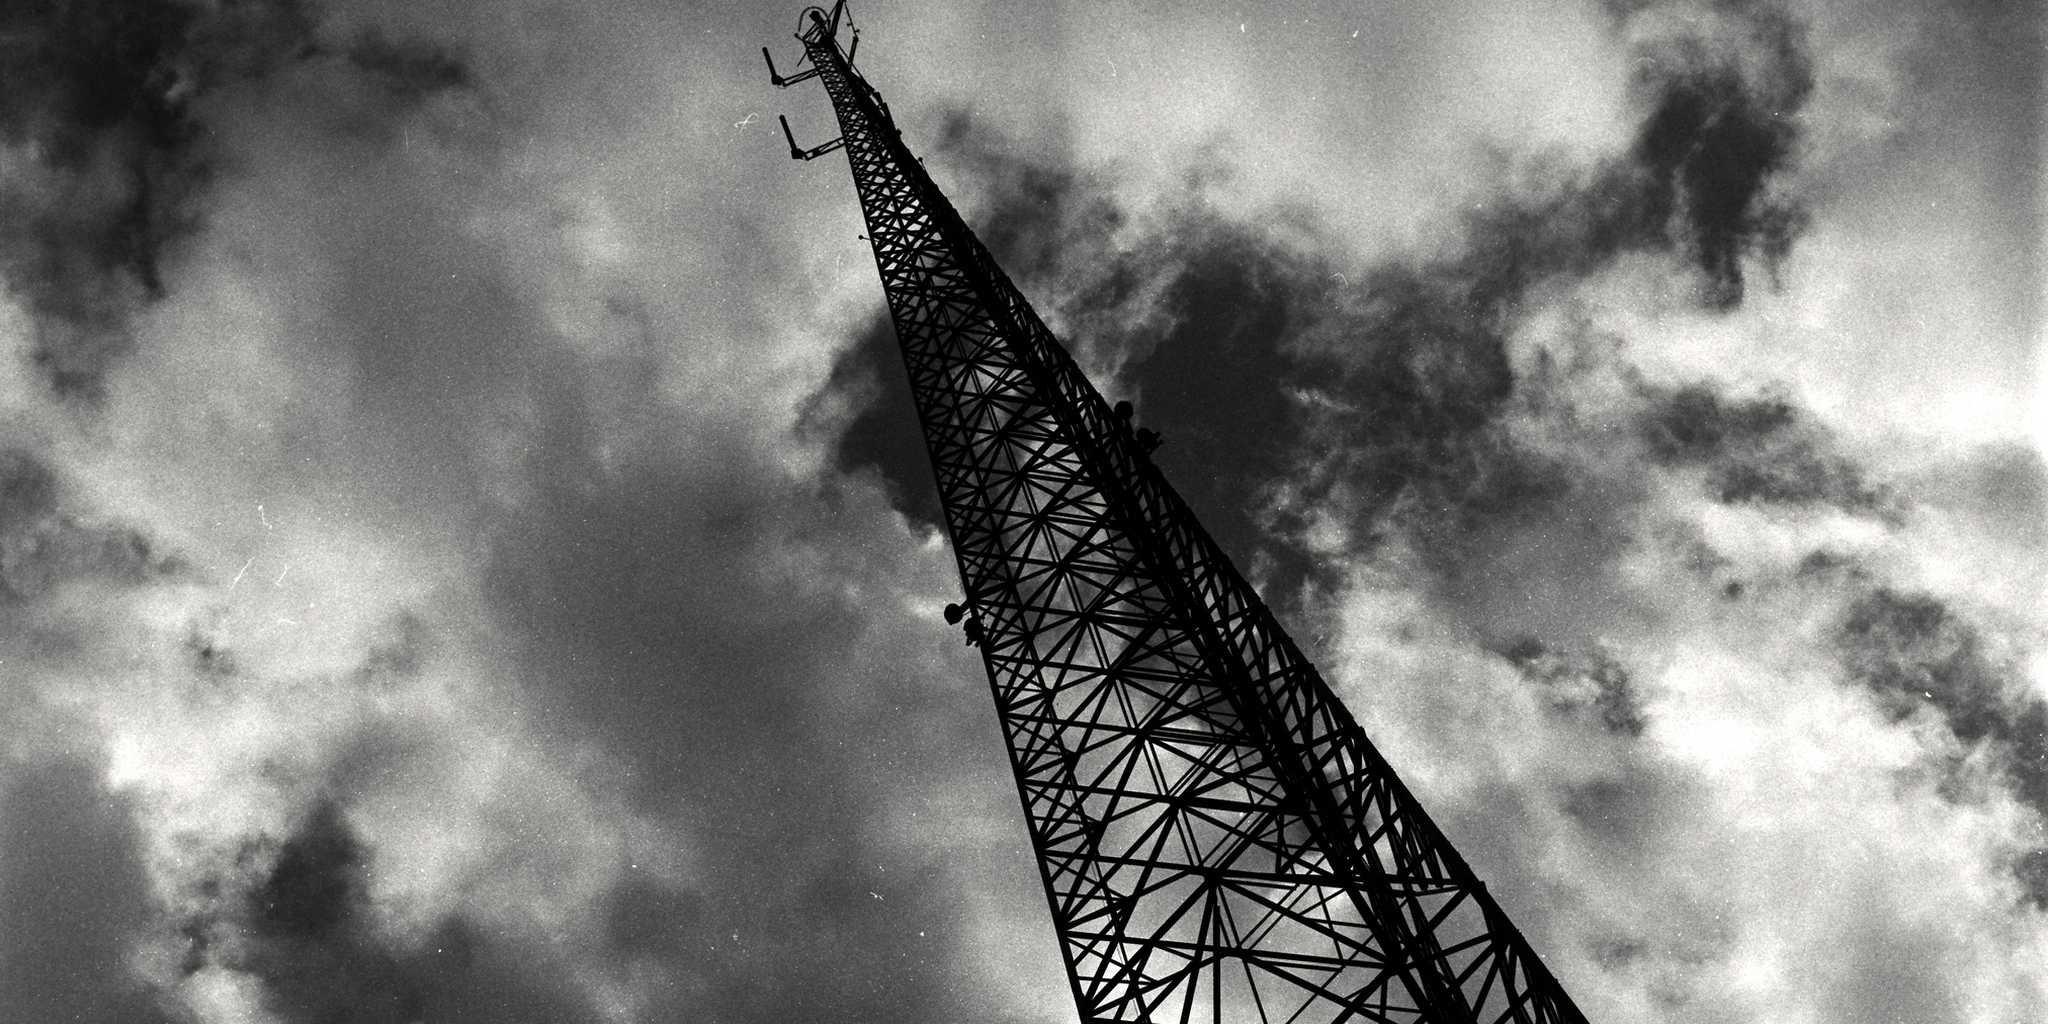 All sizes | Cell Phone Tower | Flickr - Photo Sharing!